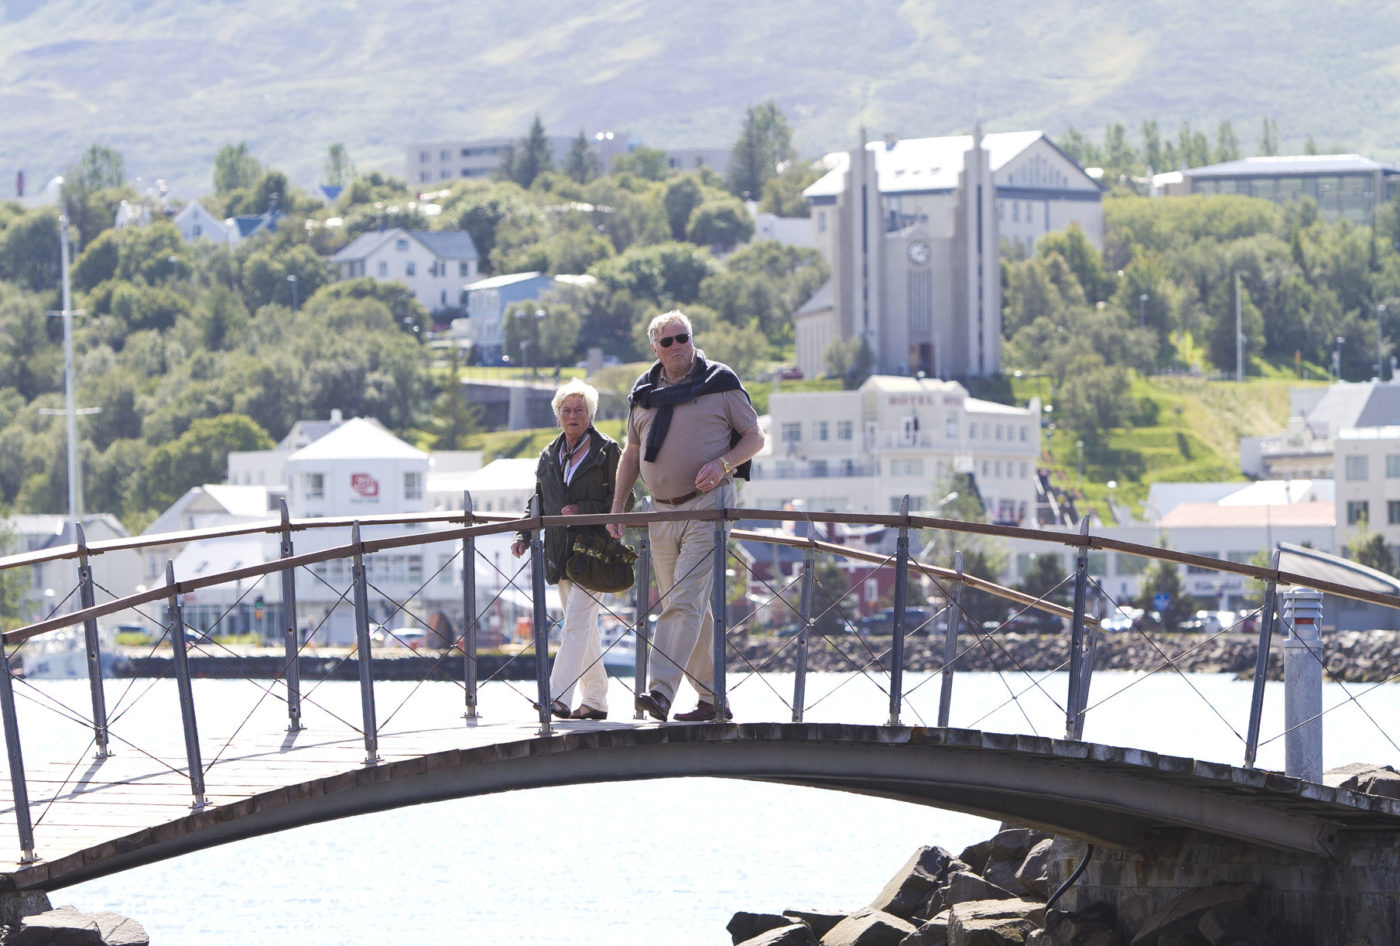 Summer in Akureyri